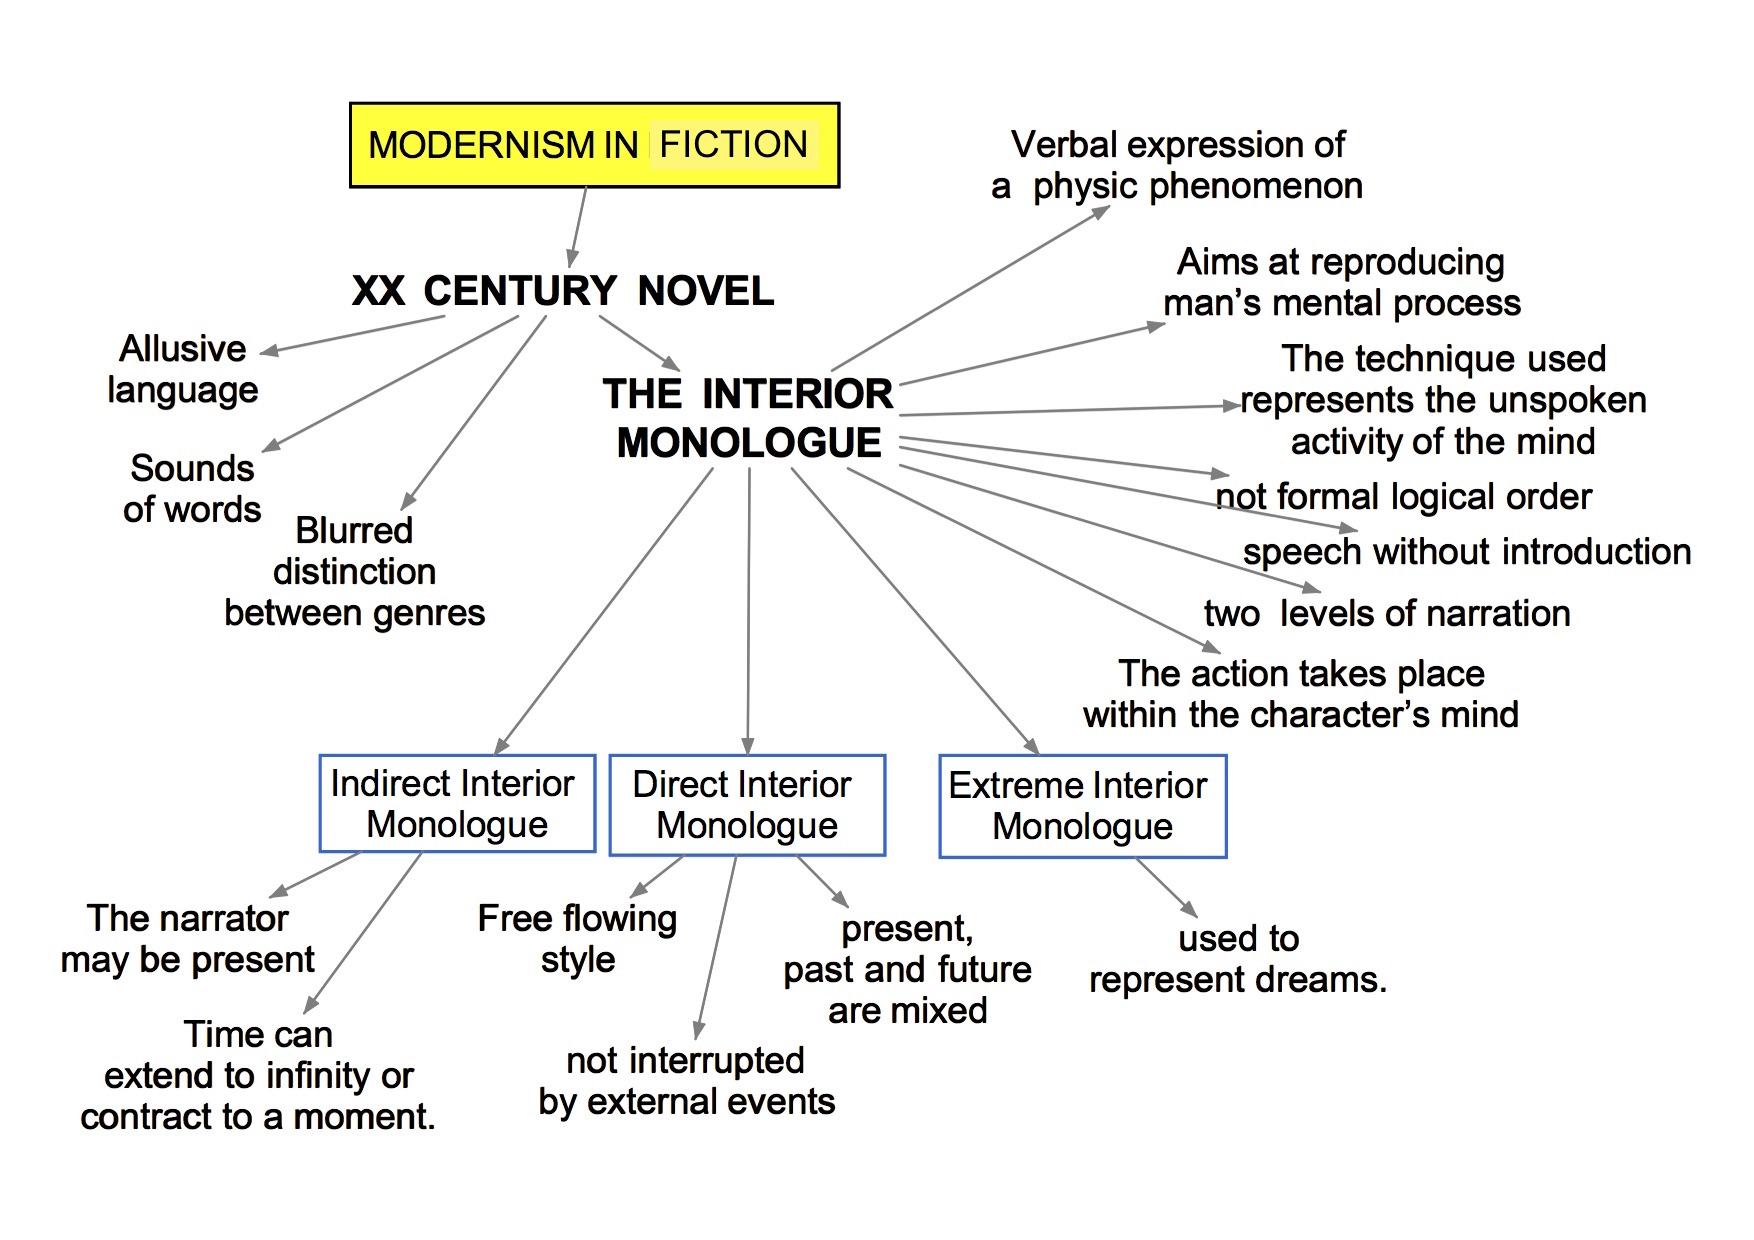 modernism in fiction - interior monologue